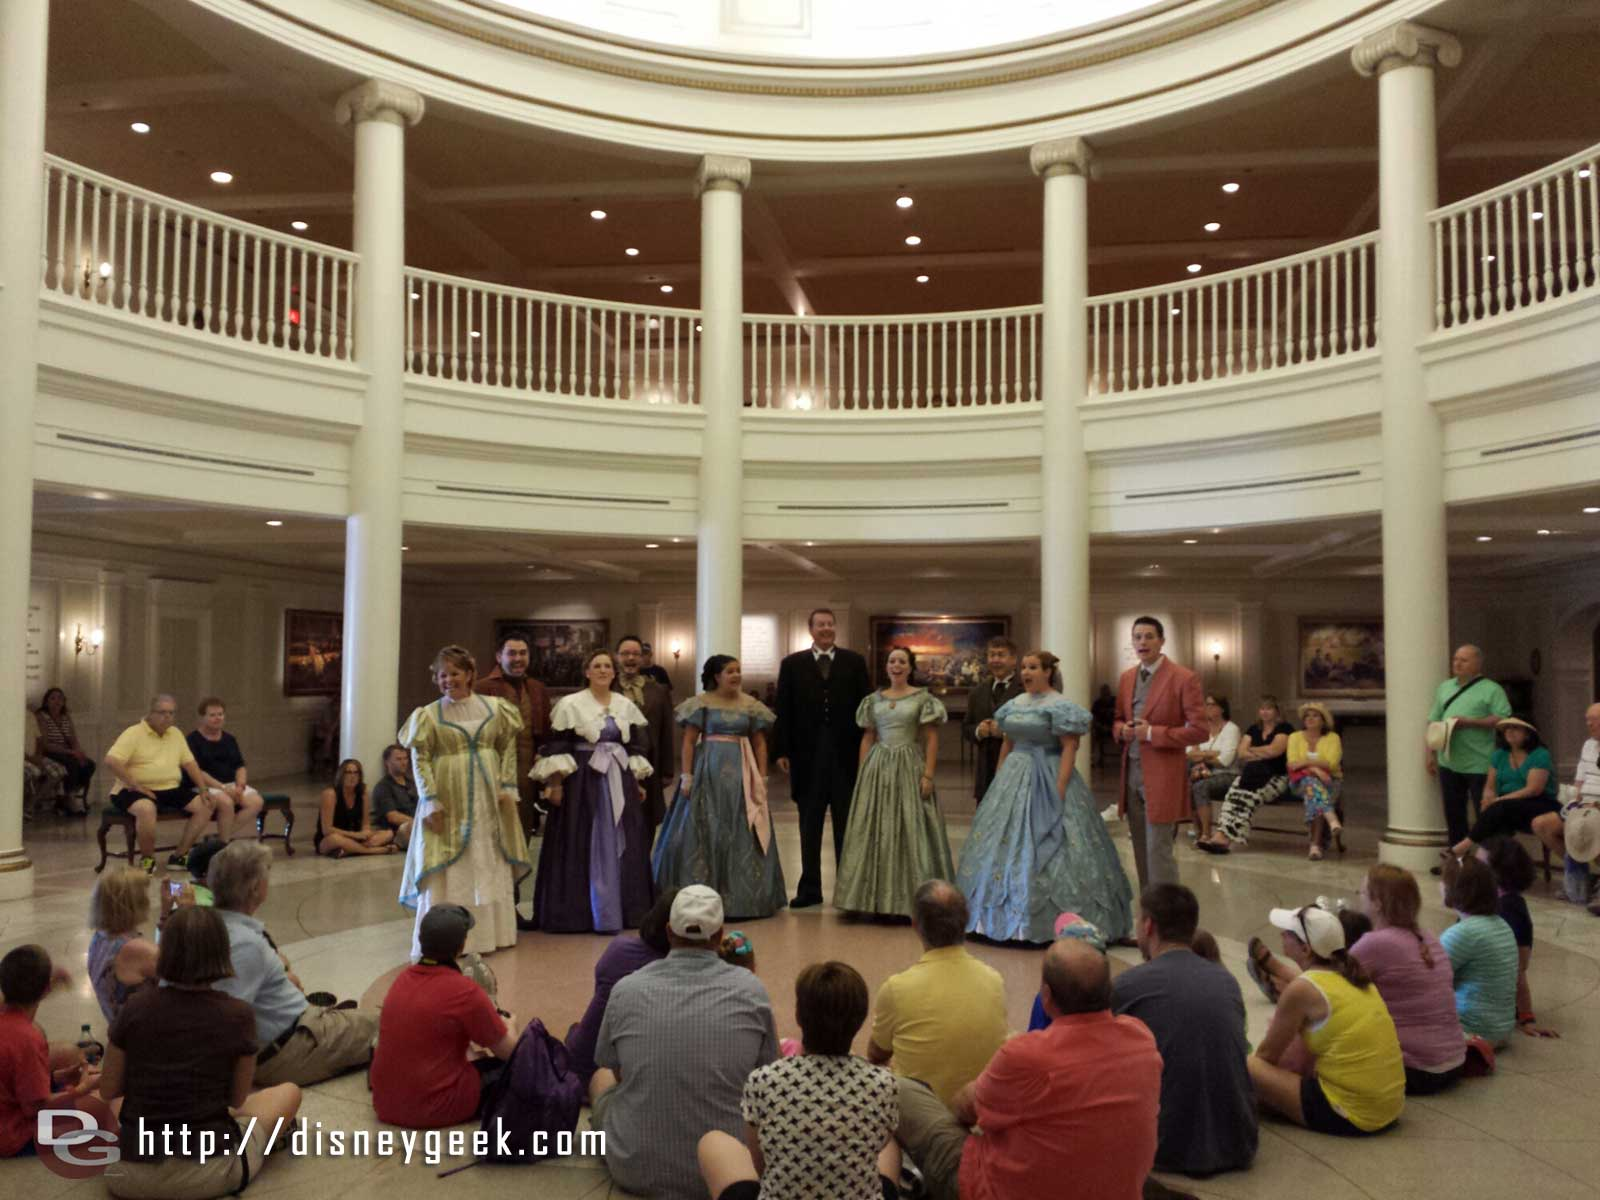 The Voices of Liberty performing in the American Adventure